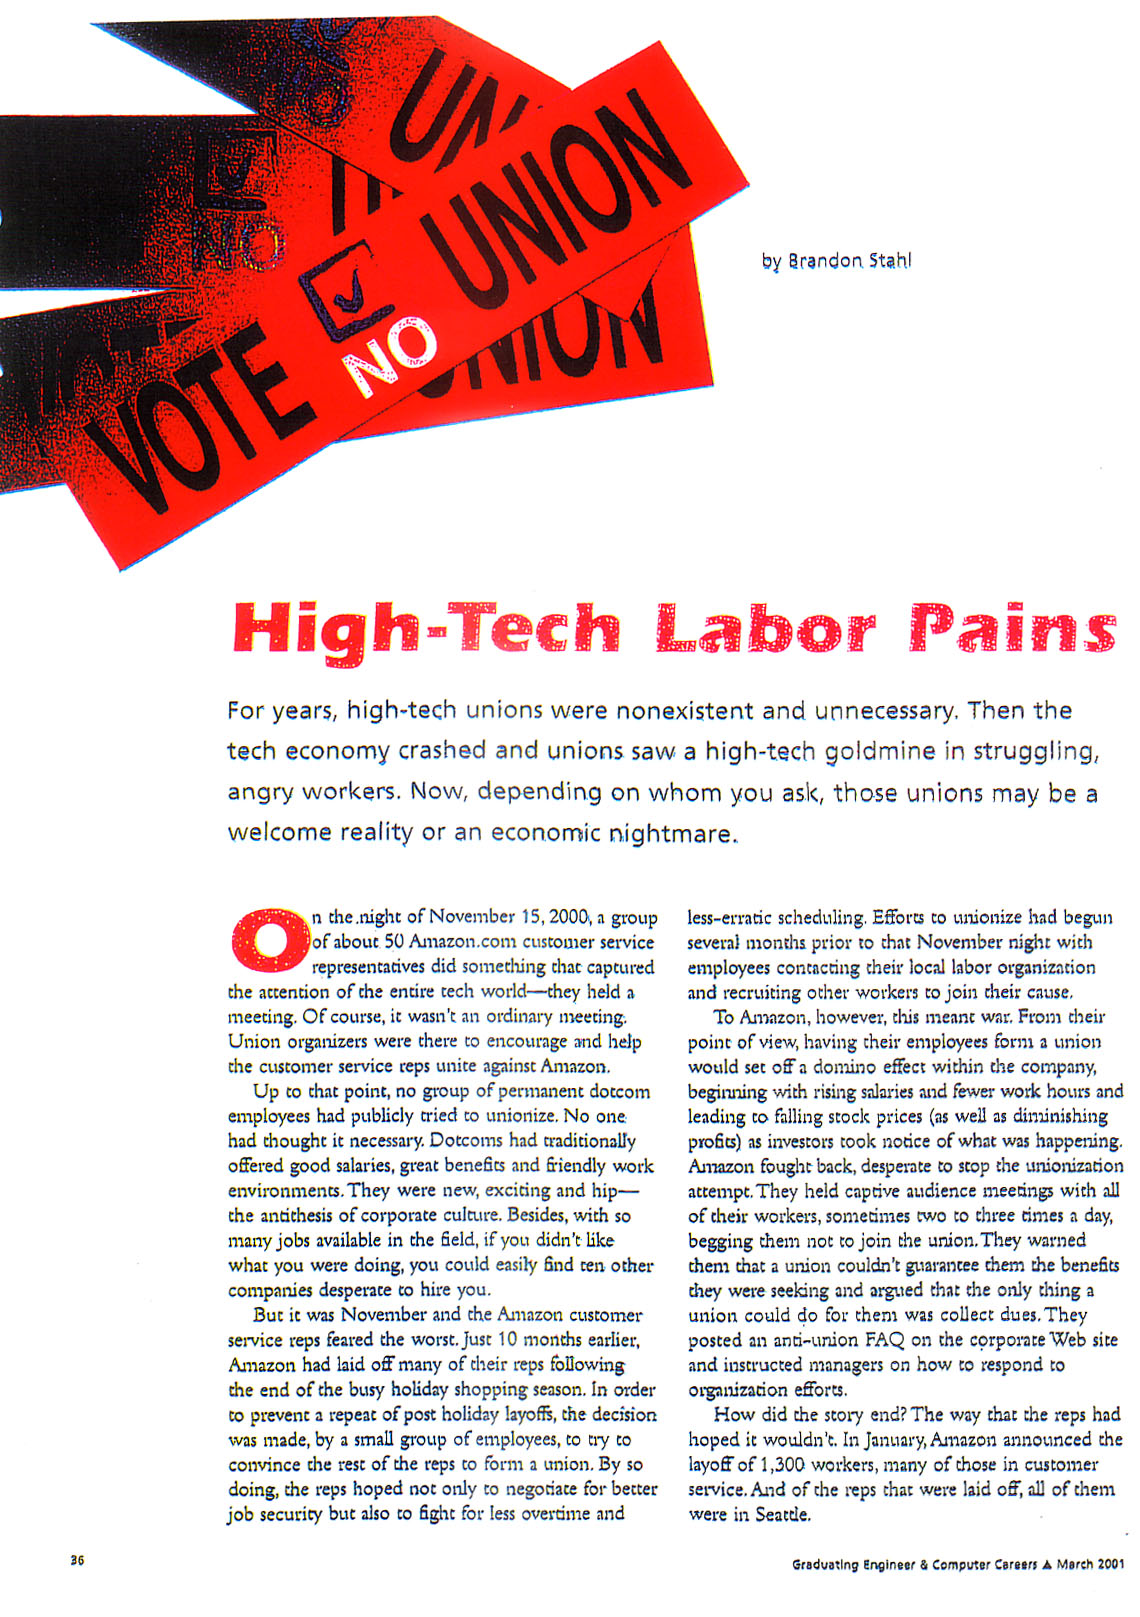 graduating engineer & computer careers-march 2001-high-tech labor pains page 1.jpg